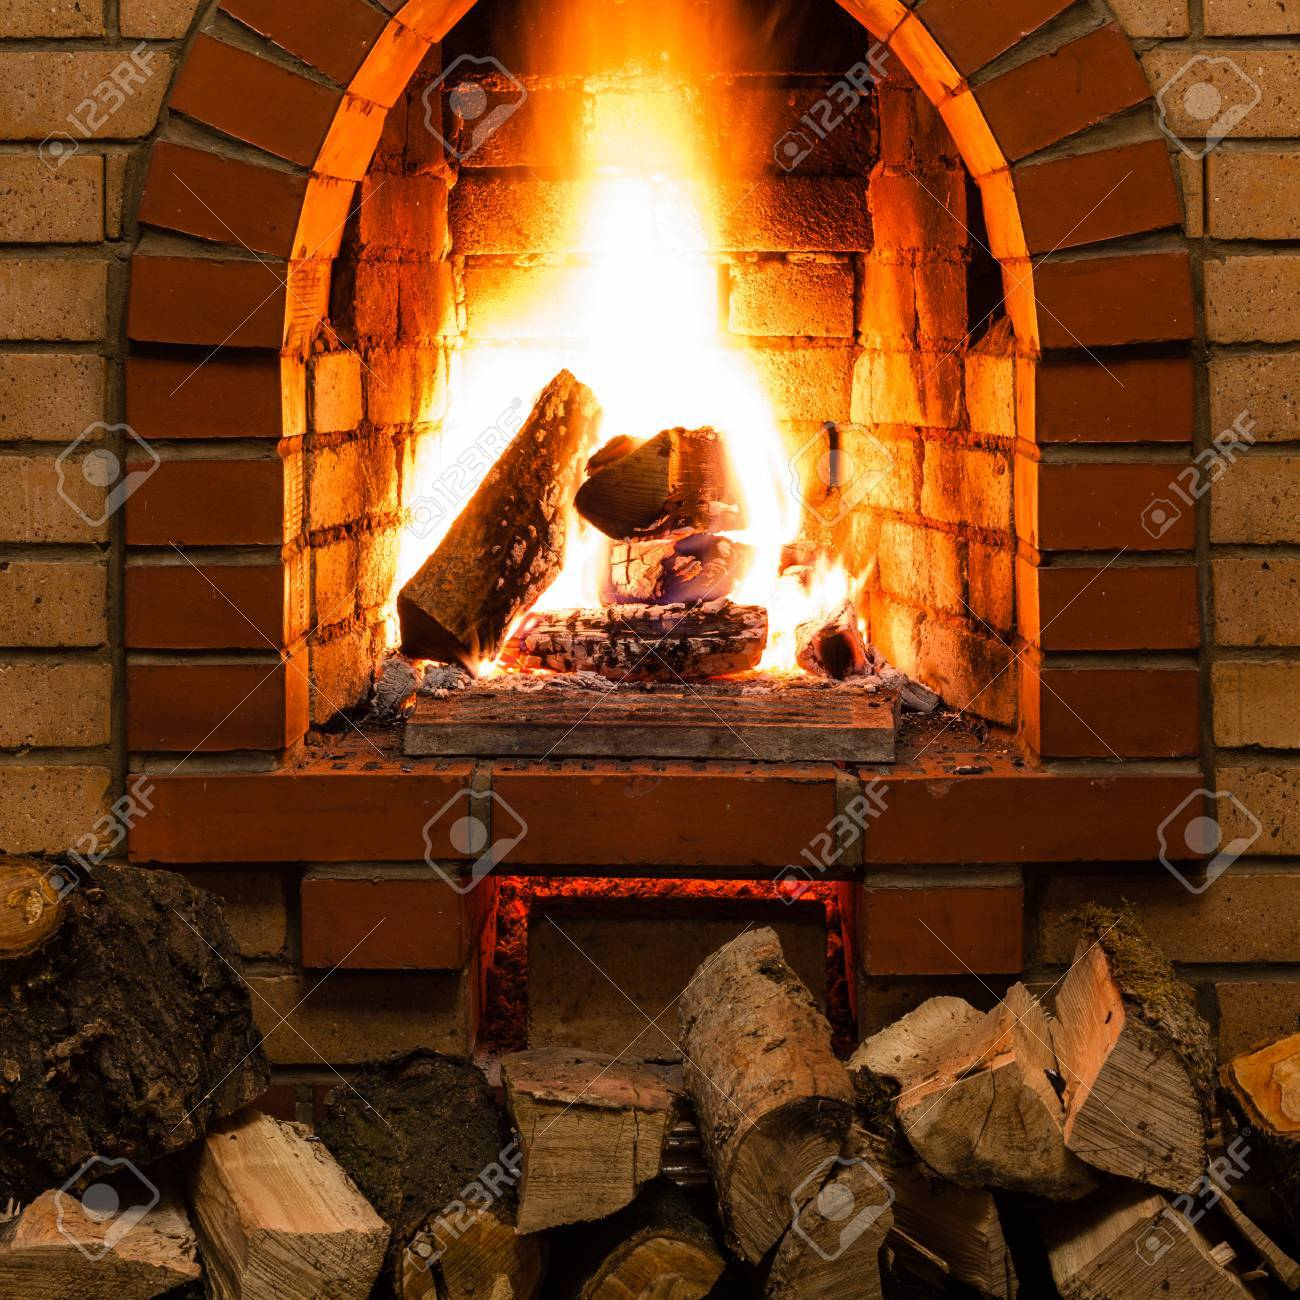 Stack Of Wood And Tongues Of Fire In Indoor Brick Fireplace In